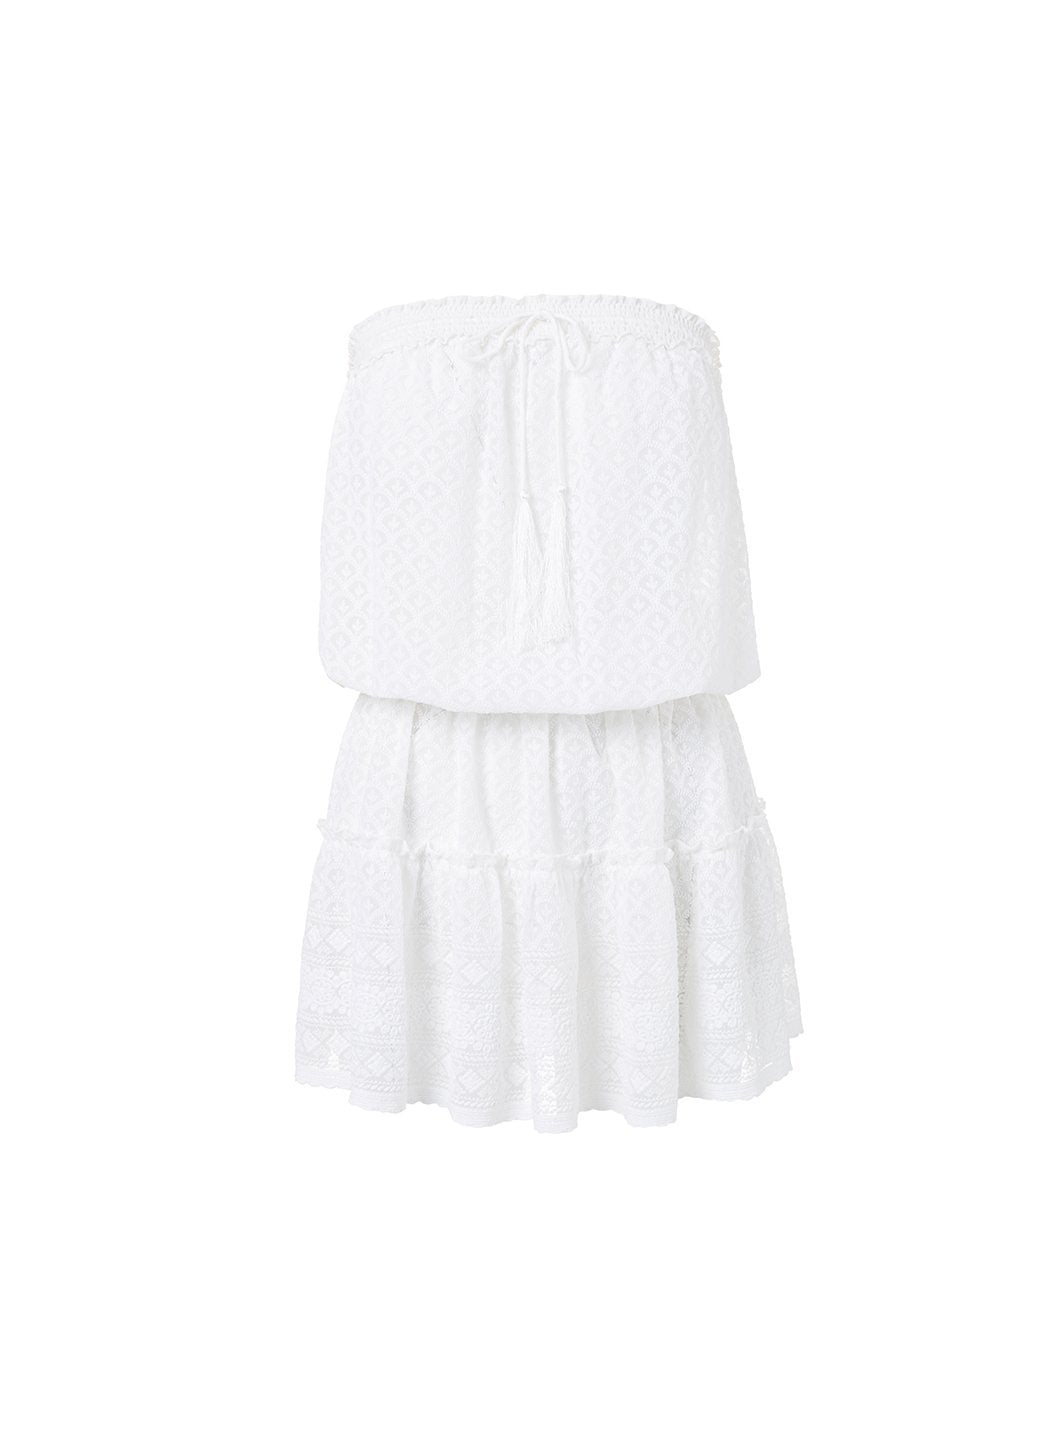 fru white textured bandeau short frill beach dress 2019